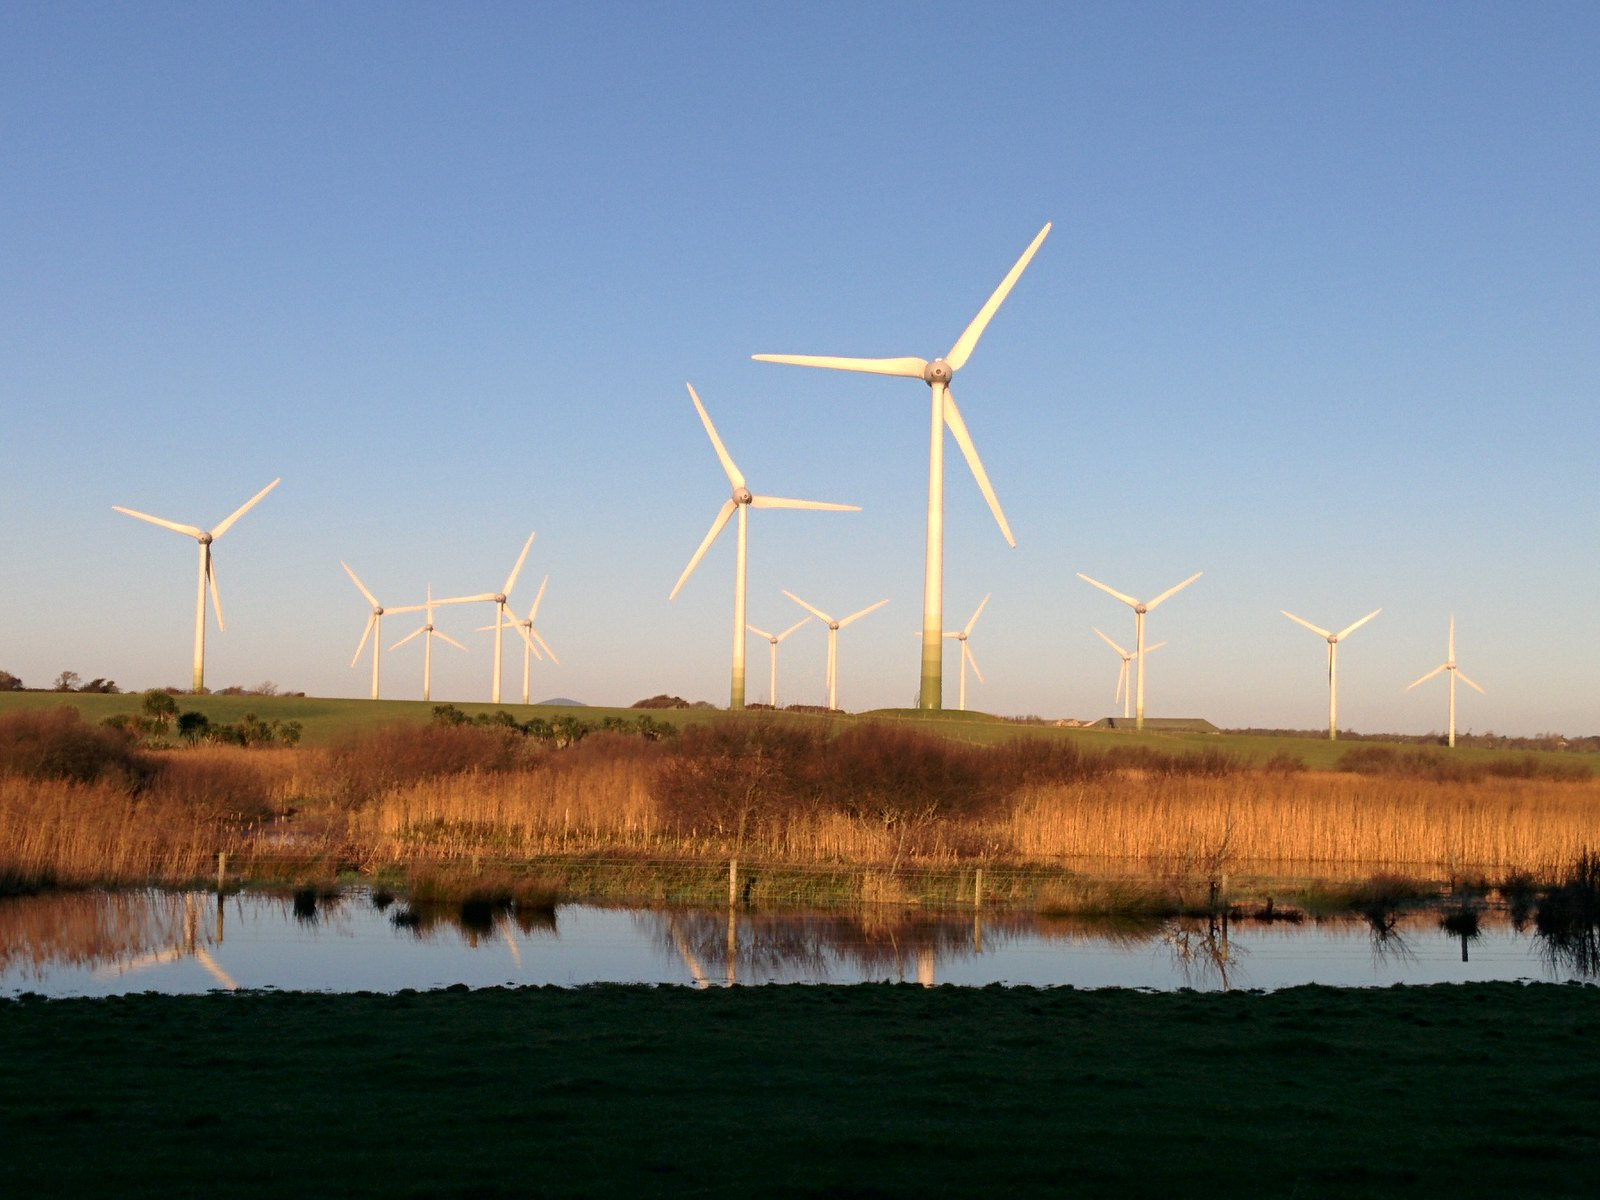 Wind turbines in County Wexford Ireland.